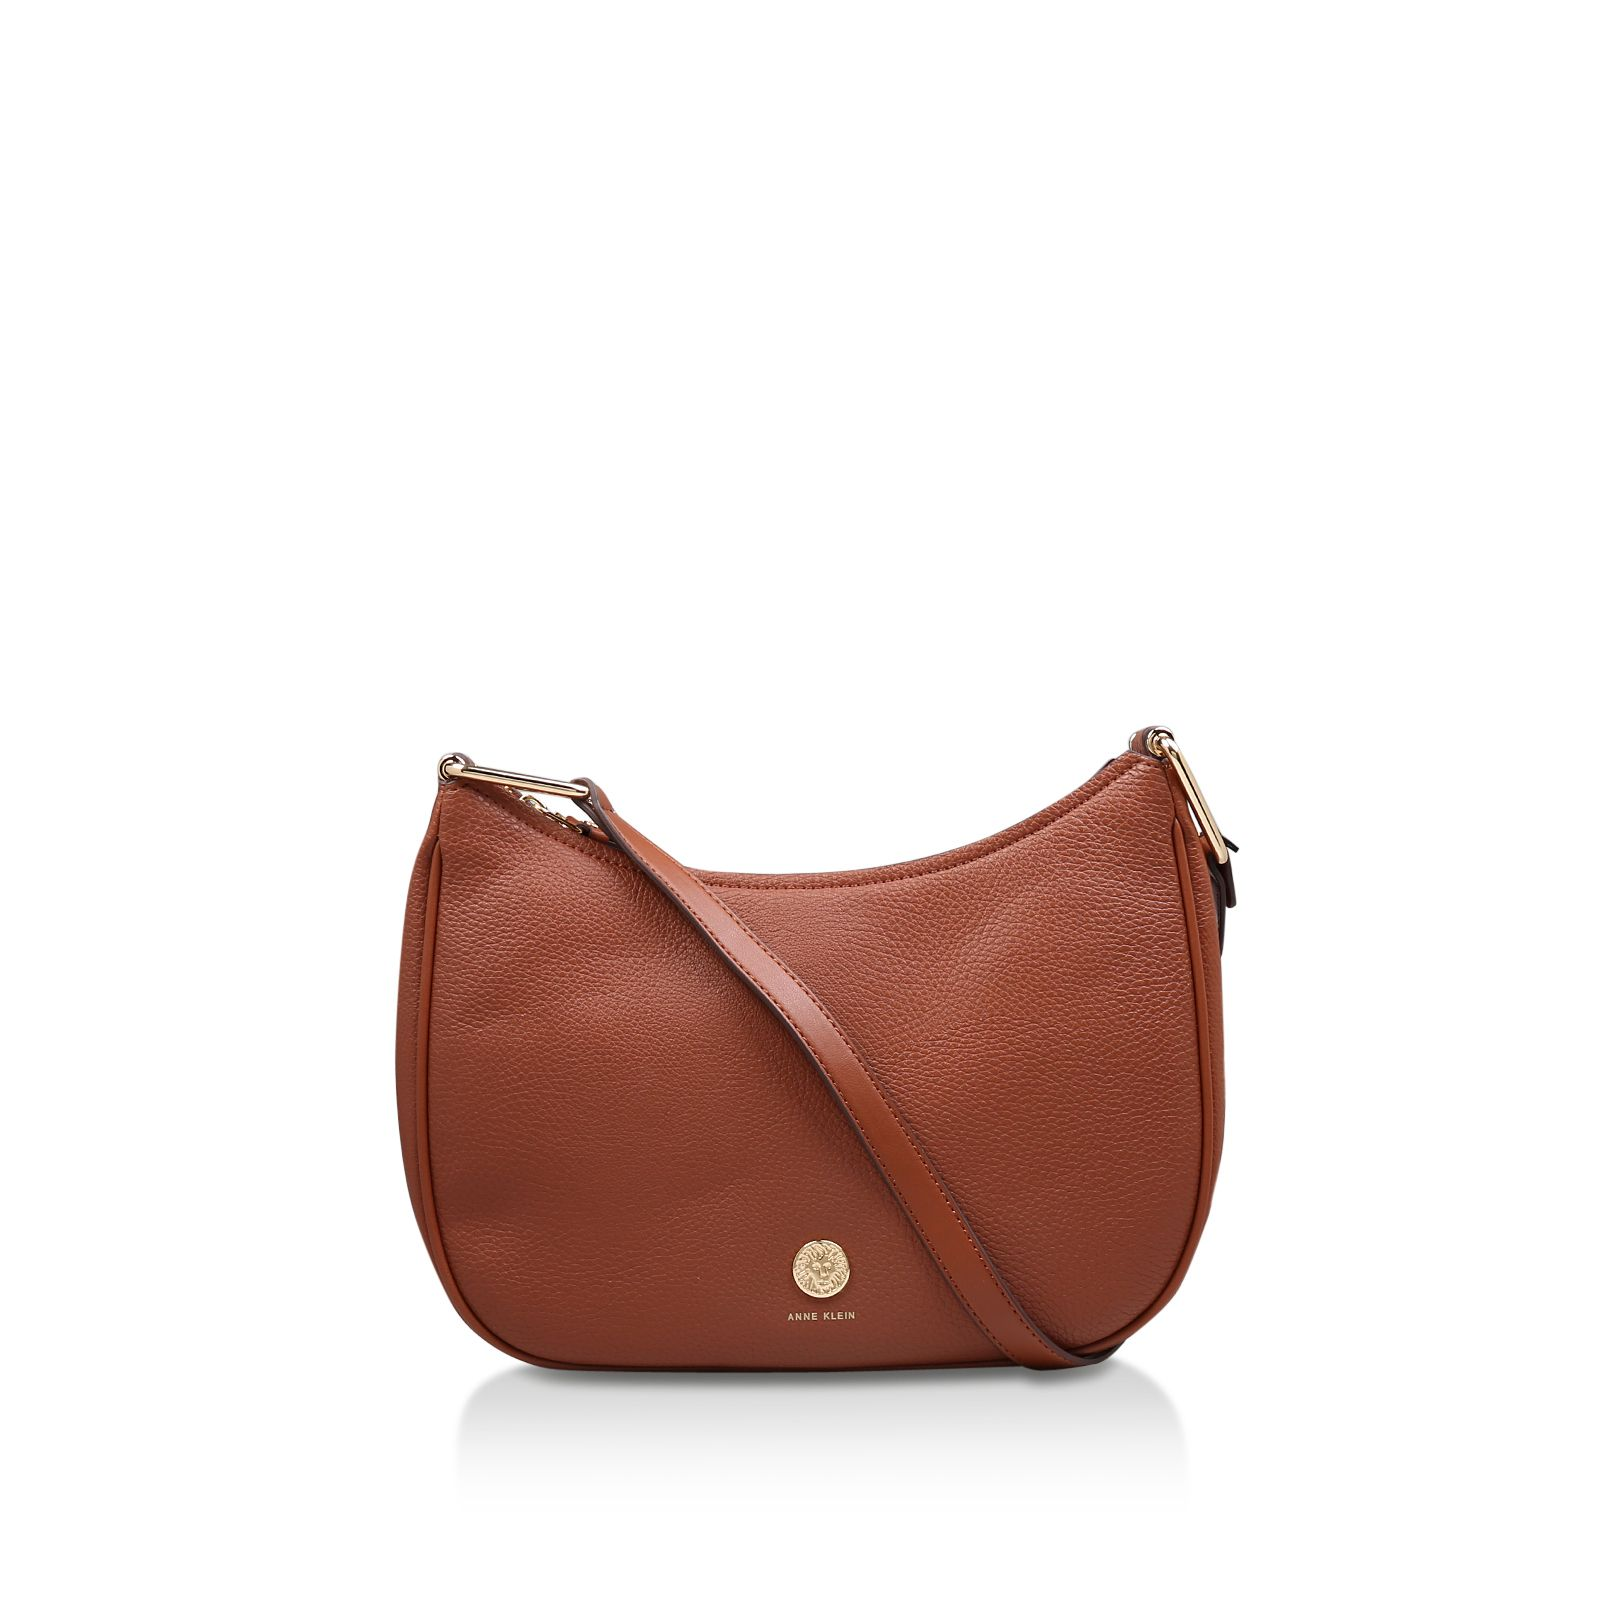 Anne Klein Hinge Crossbody Bag, Brown